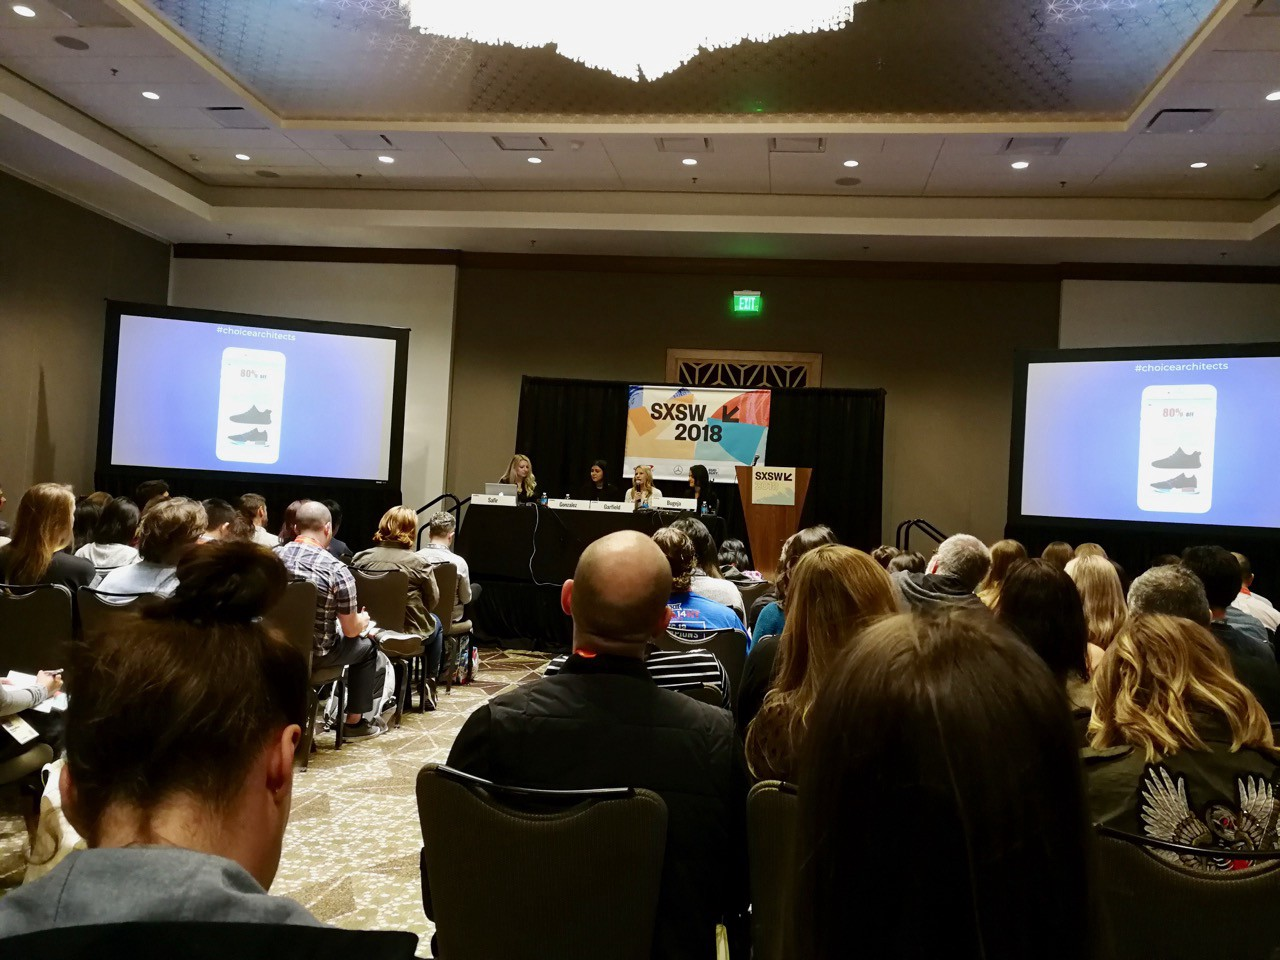 /sxsw-part-2-fixing-tech-ai-and-startups-5b48f6435925 feature image